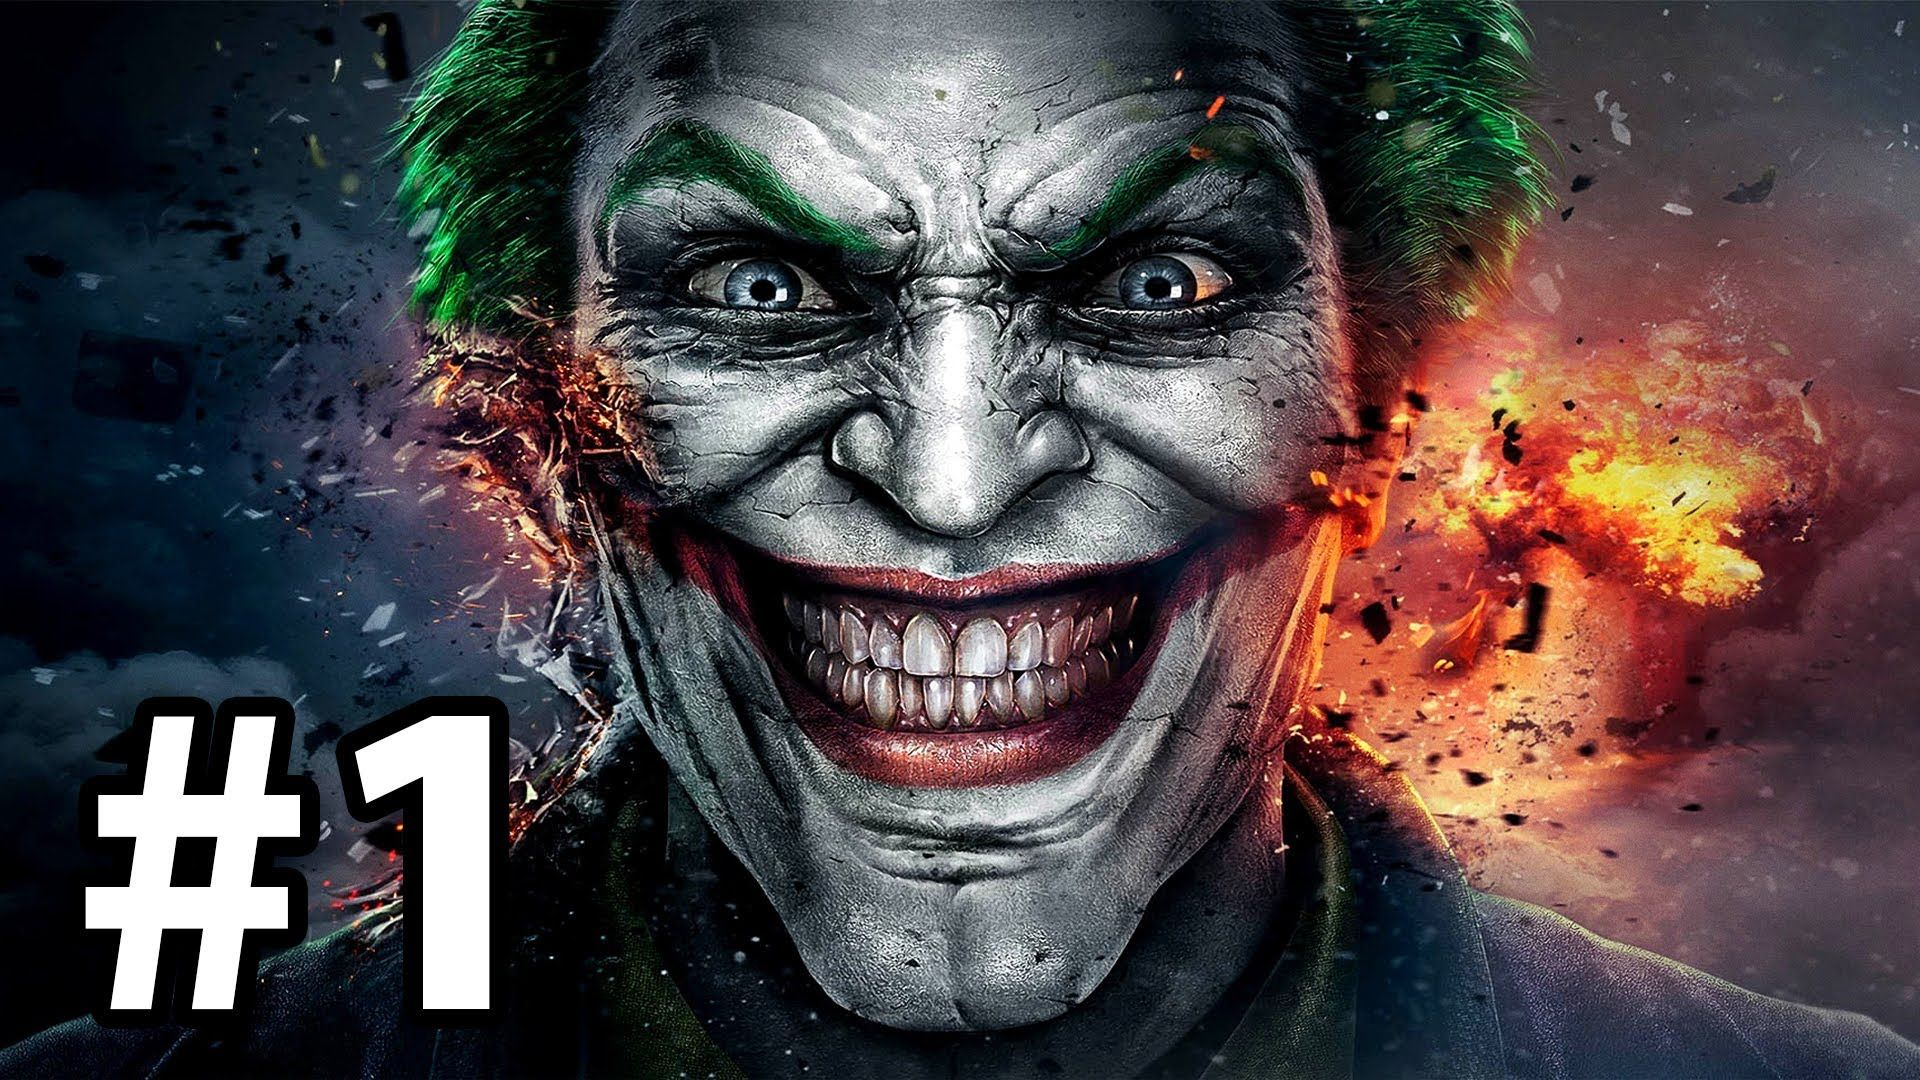 Injustice Gods Among Us Gameplay Ps3 Imagenes De Joker Joker El Guason